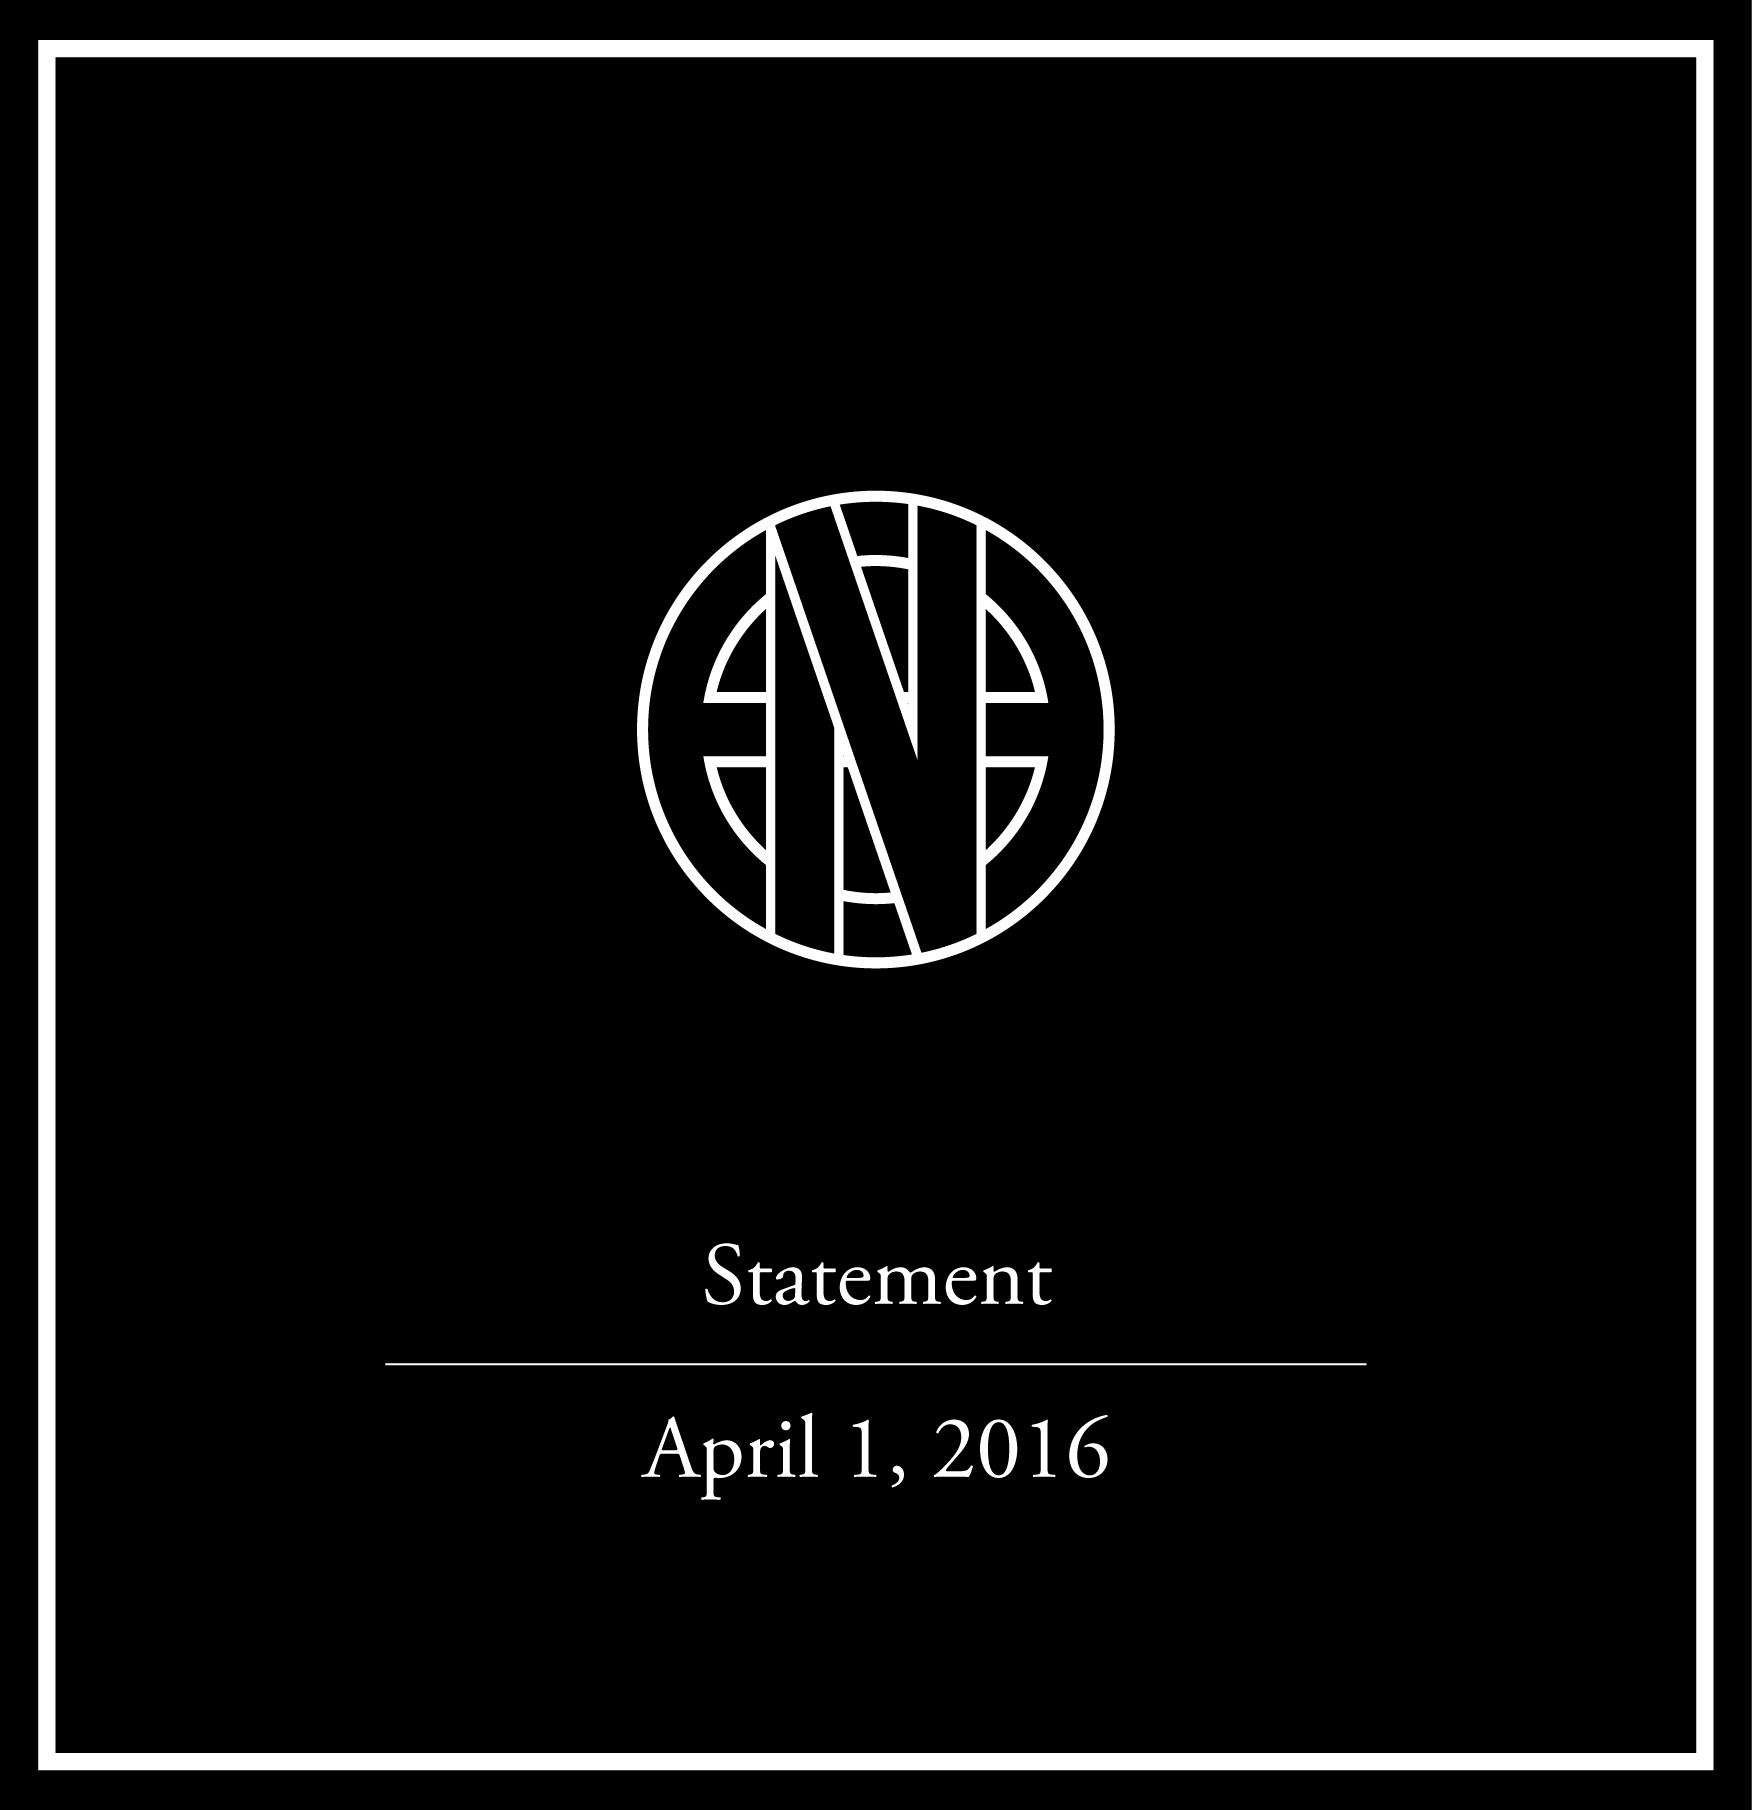 envy_Statement2016_1apr_Re